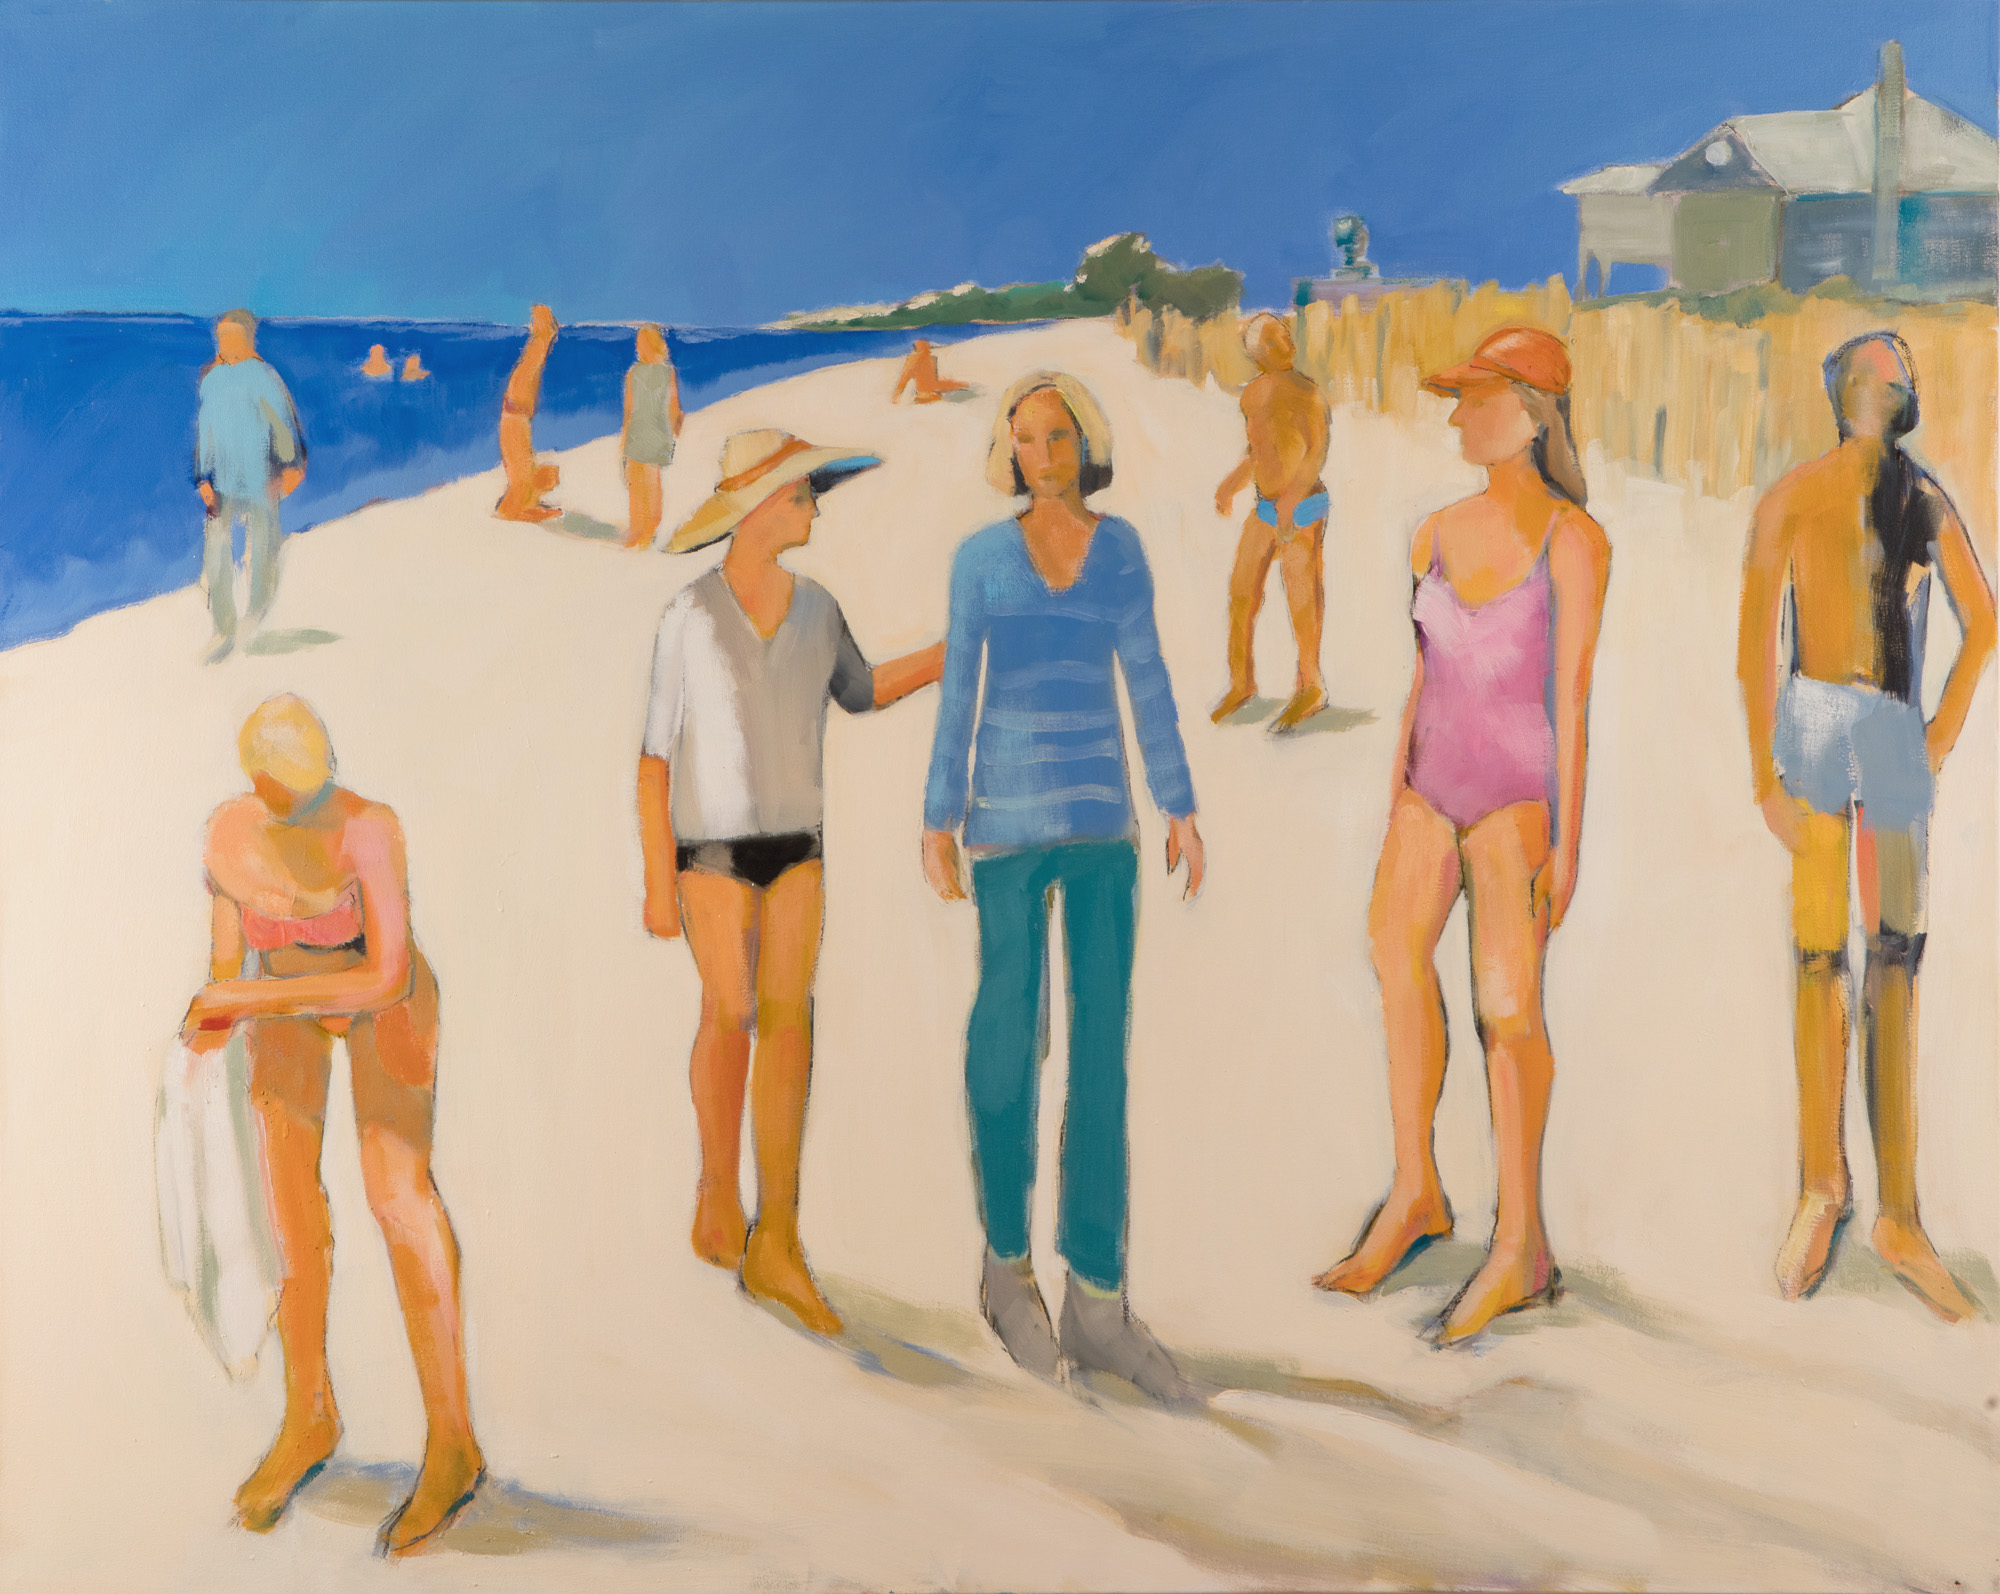 Sarah Benham -  Beach Walkers  Oil on Canvas, 48 x 60 inches